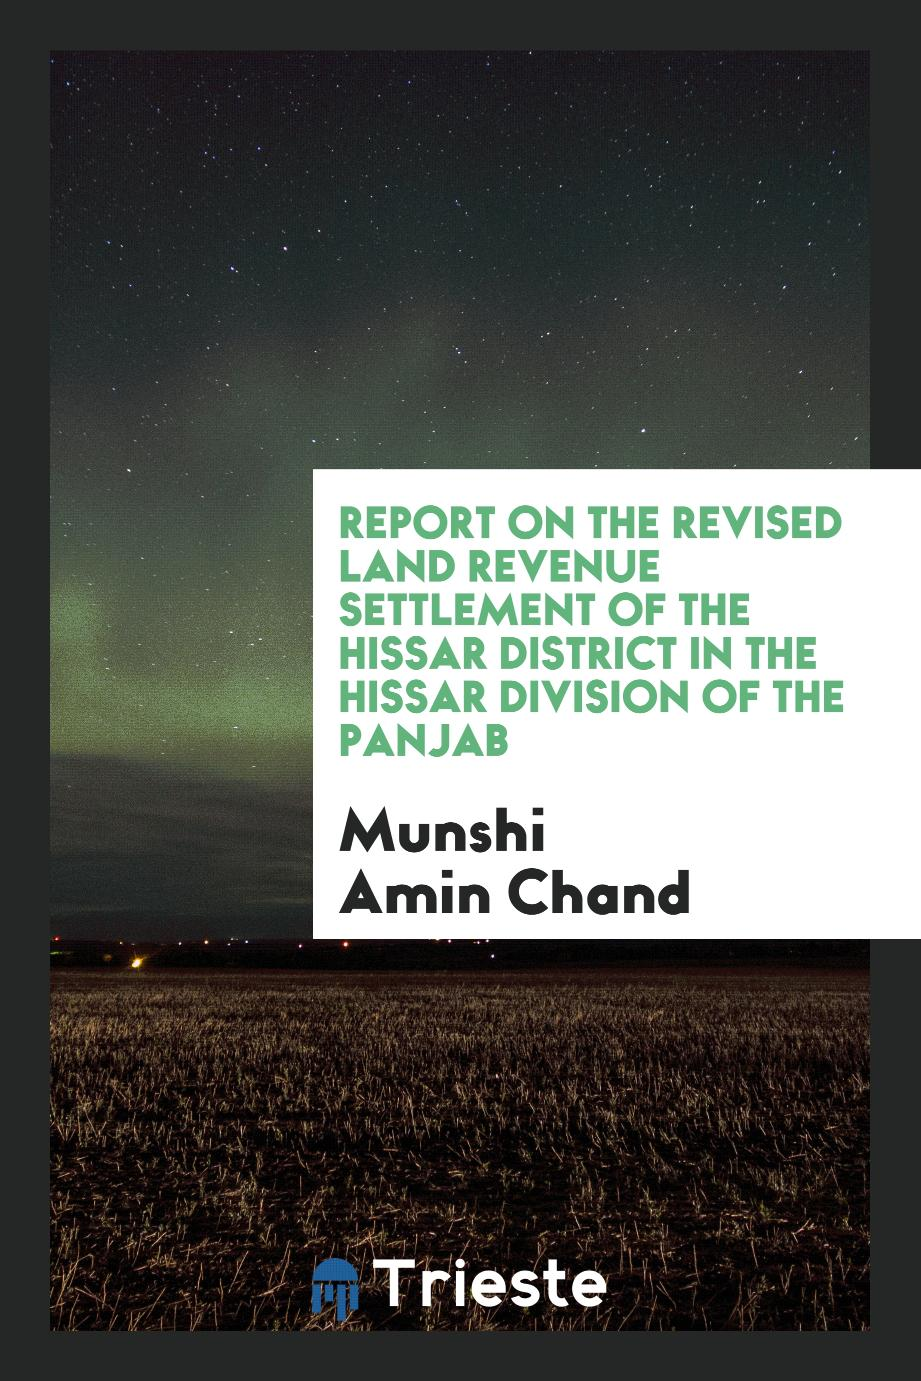 Report on the Revised Land Revenue Settlement of the Hissar District in the Hissar Division of the Panjab